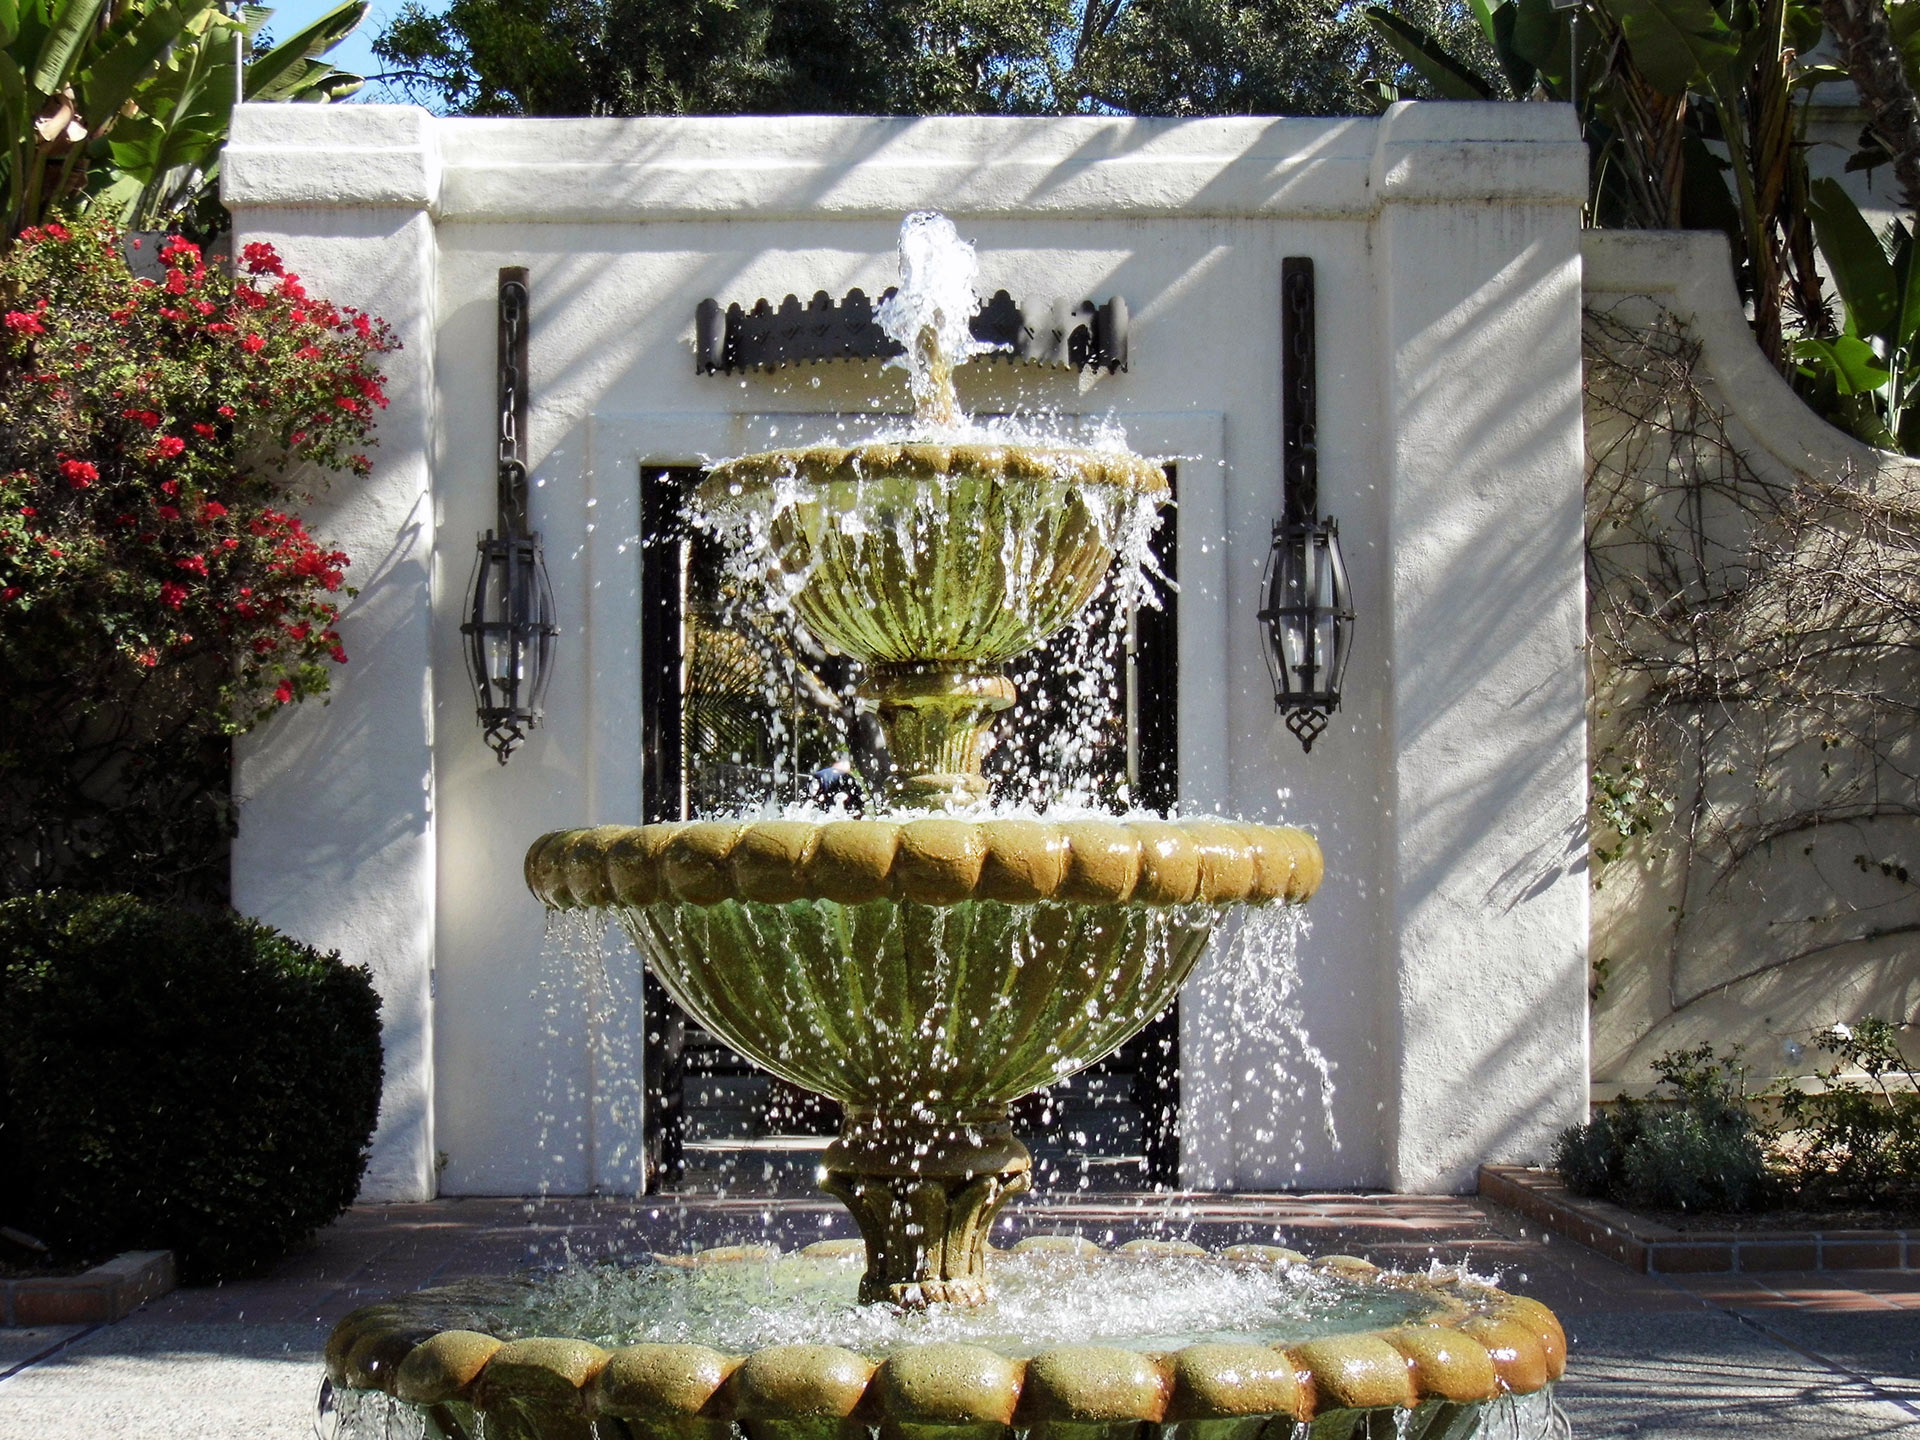 The fountain in the Main Courtyard at the Los Angeles River Center & Gardens. | Sandi Hemmerlein